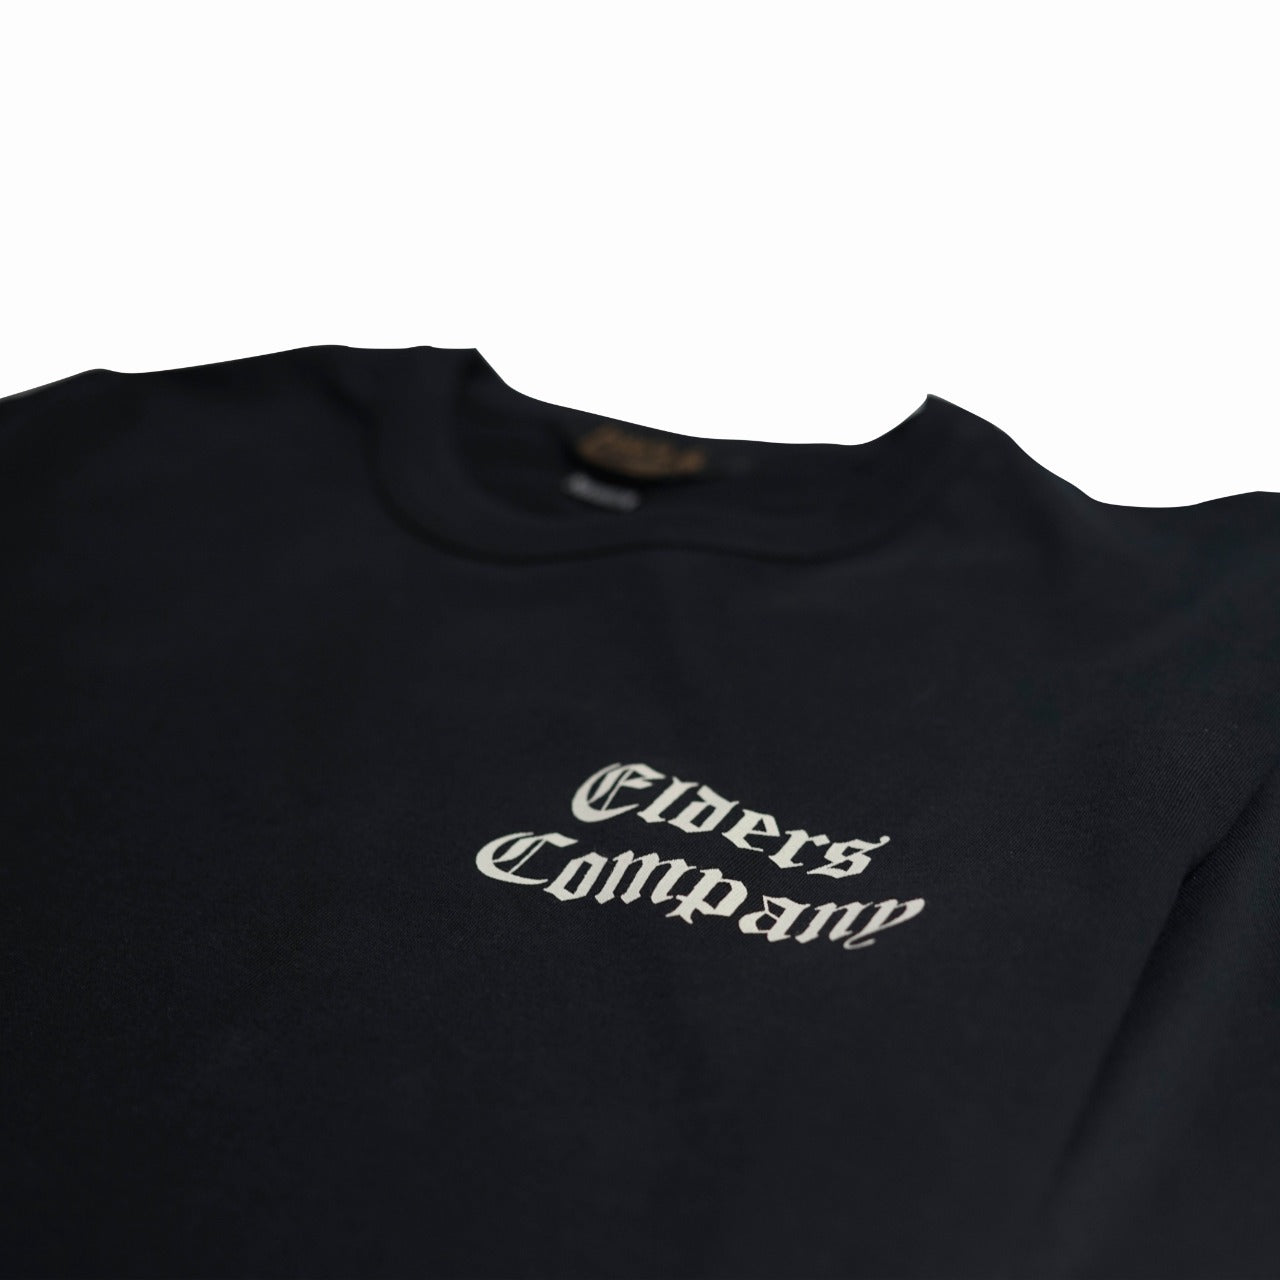 Elders Art California T-Shirt Black